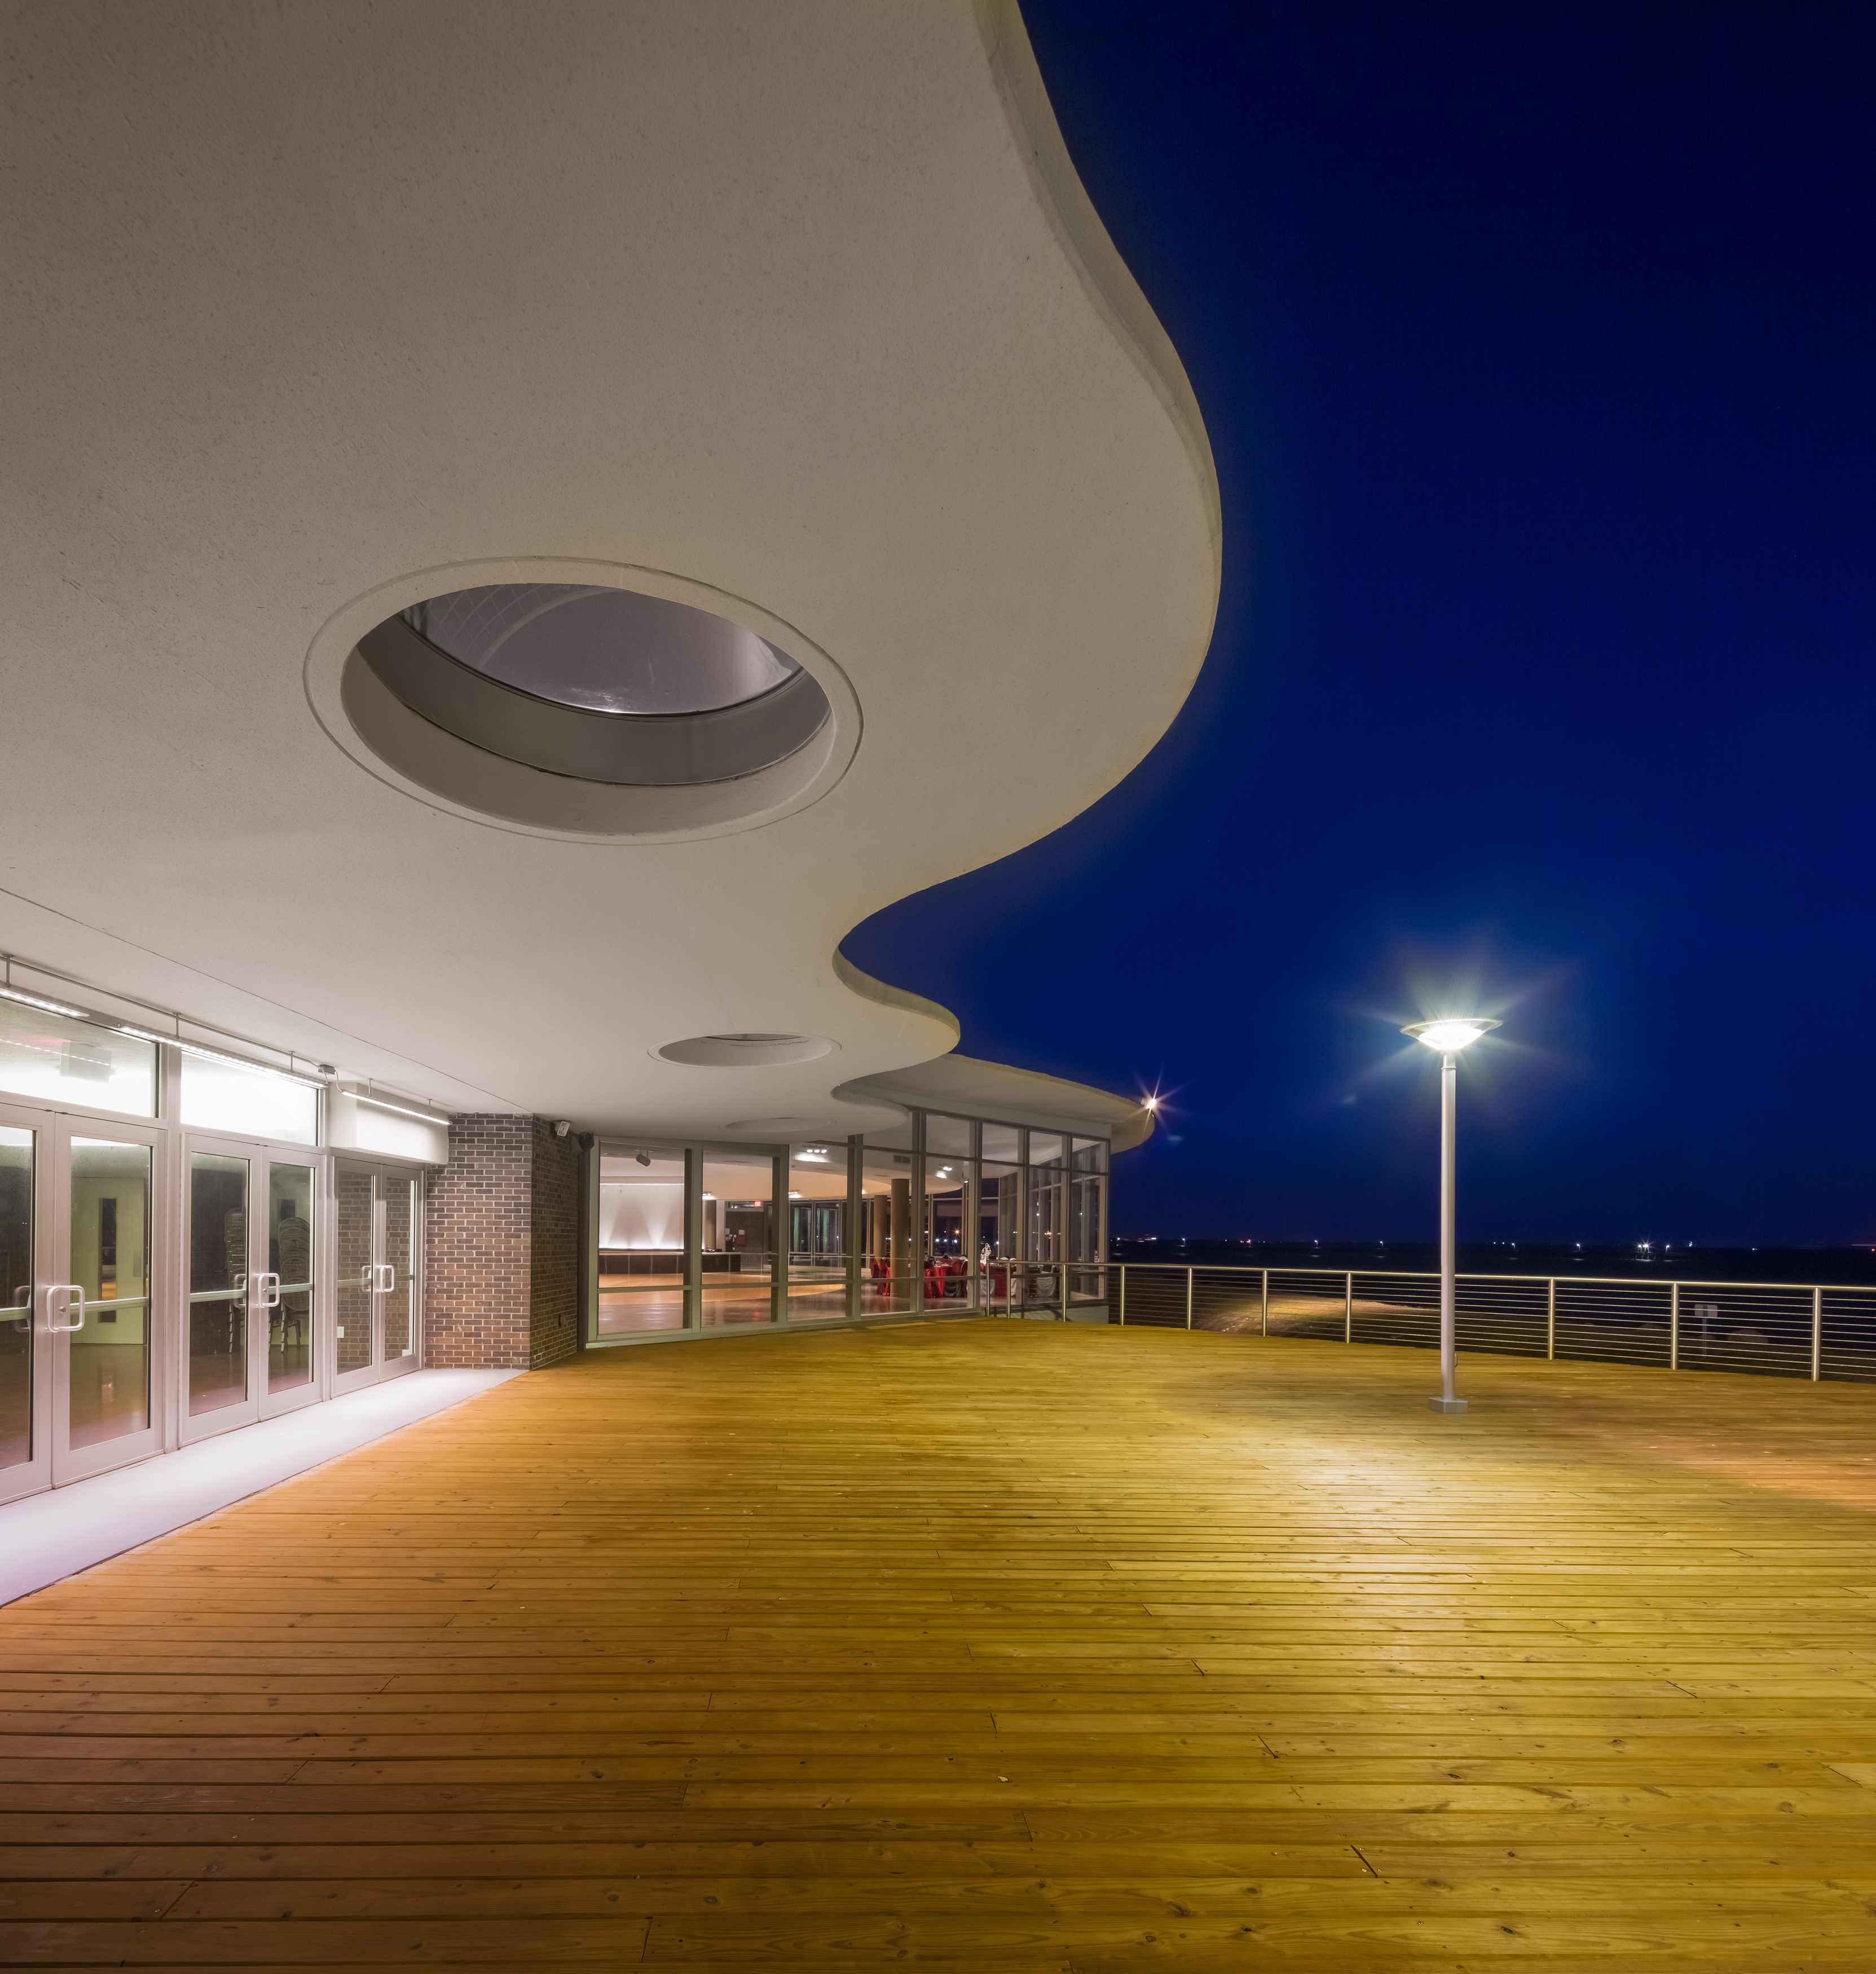 harris county precinct  sylvan beach pavilion architect magazine kirksey houston tx